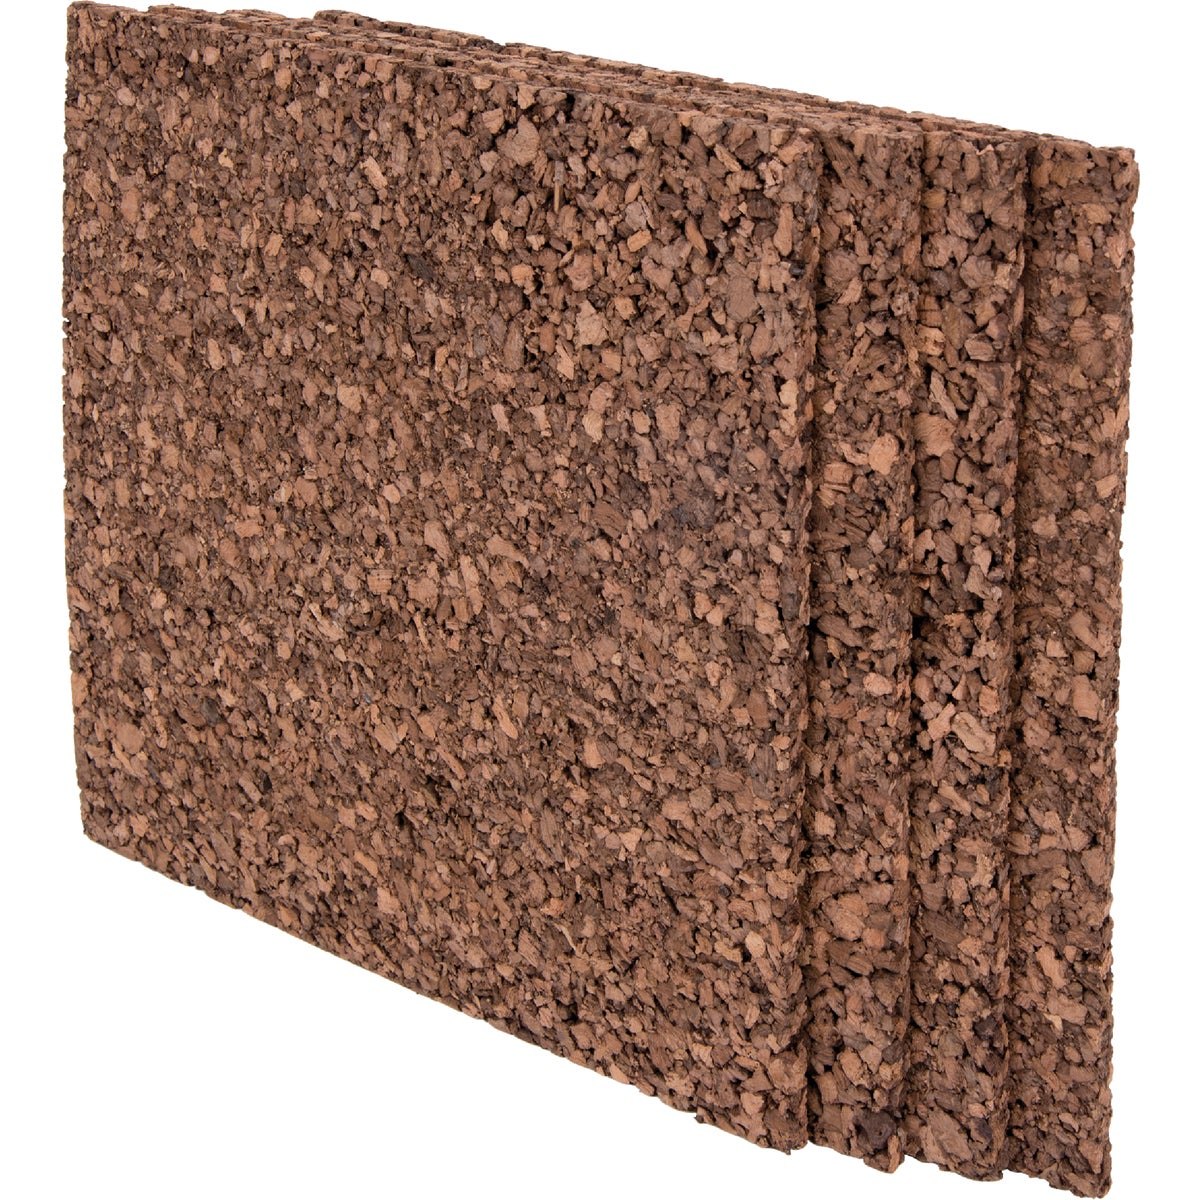 12X12 DARK TILE CORK - 82UA-4 by Board Dudes Inc